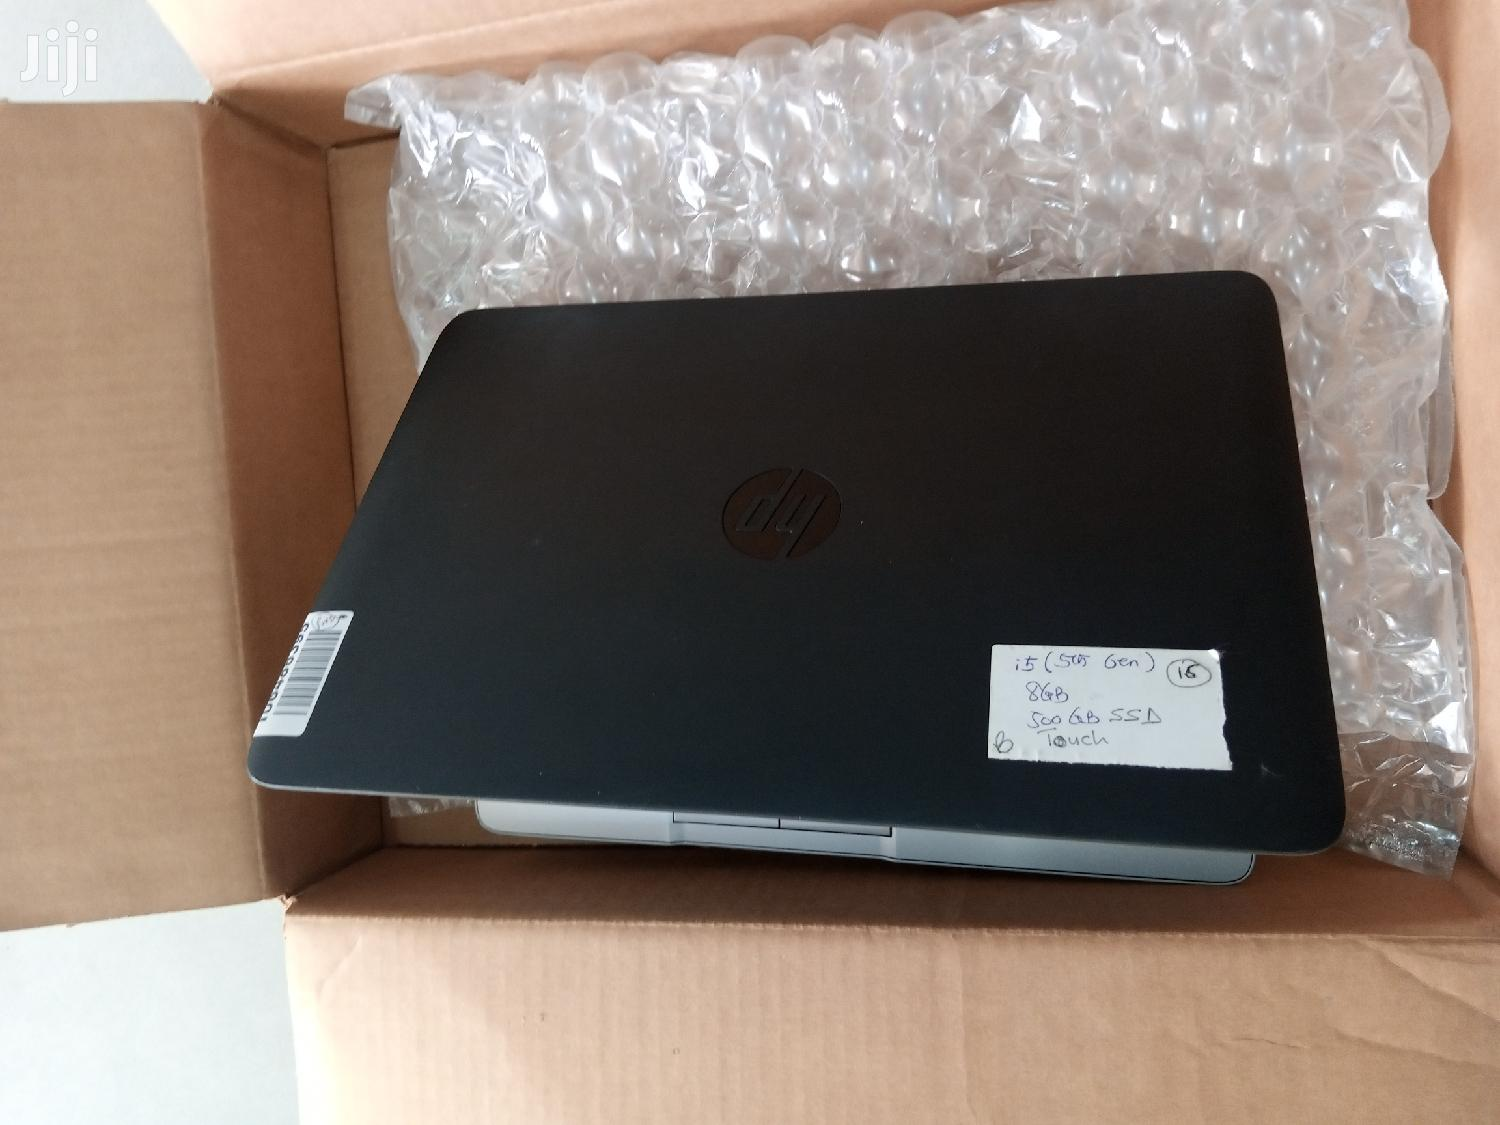 Laptop HP EliteBook 850 G2 8GB Intel Core I5 HDD 500GB | Laptops & Computers for sale in Accra new Town, Greater Accra, Ghana